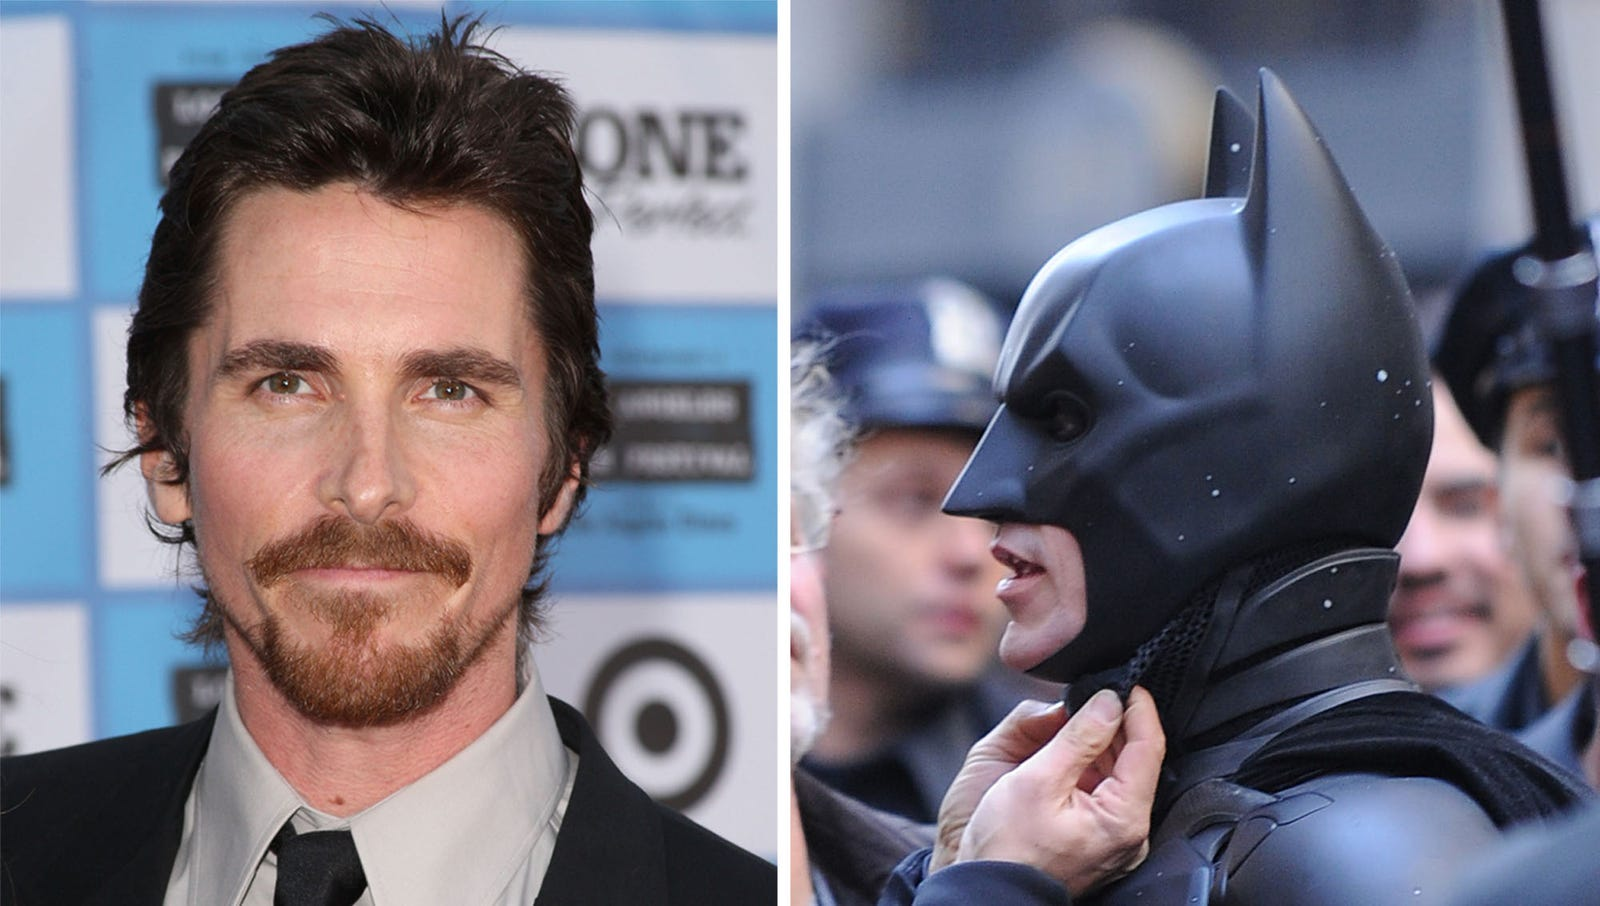 Christian Bale Glad To Be Done With Most Humiliating Experience Of Professional Life